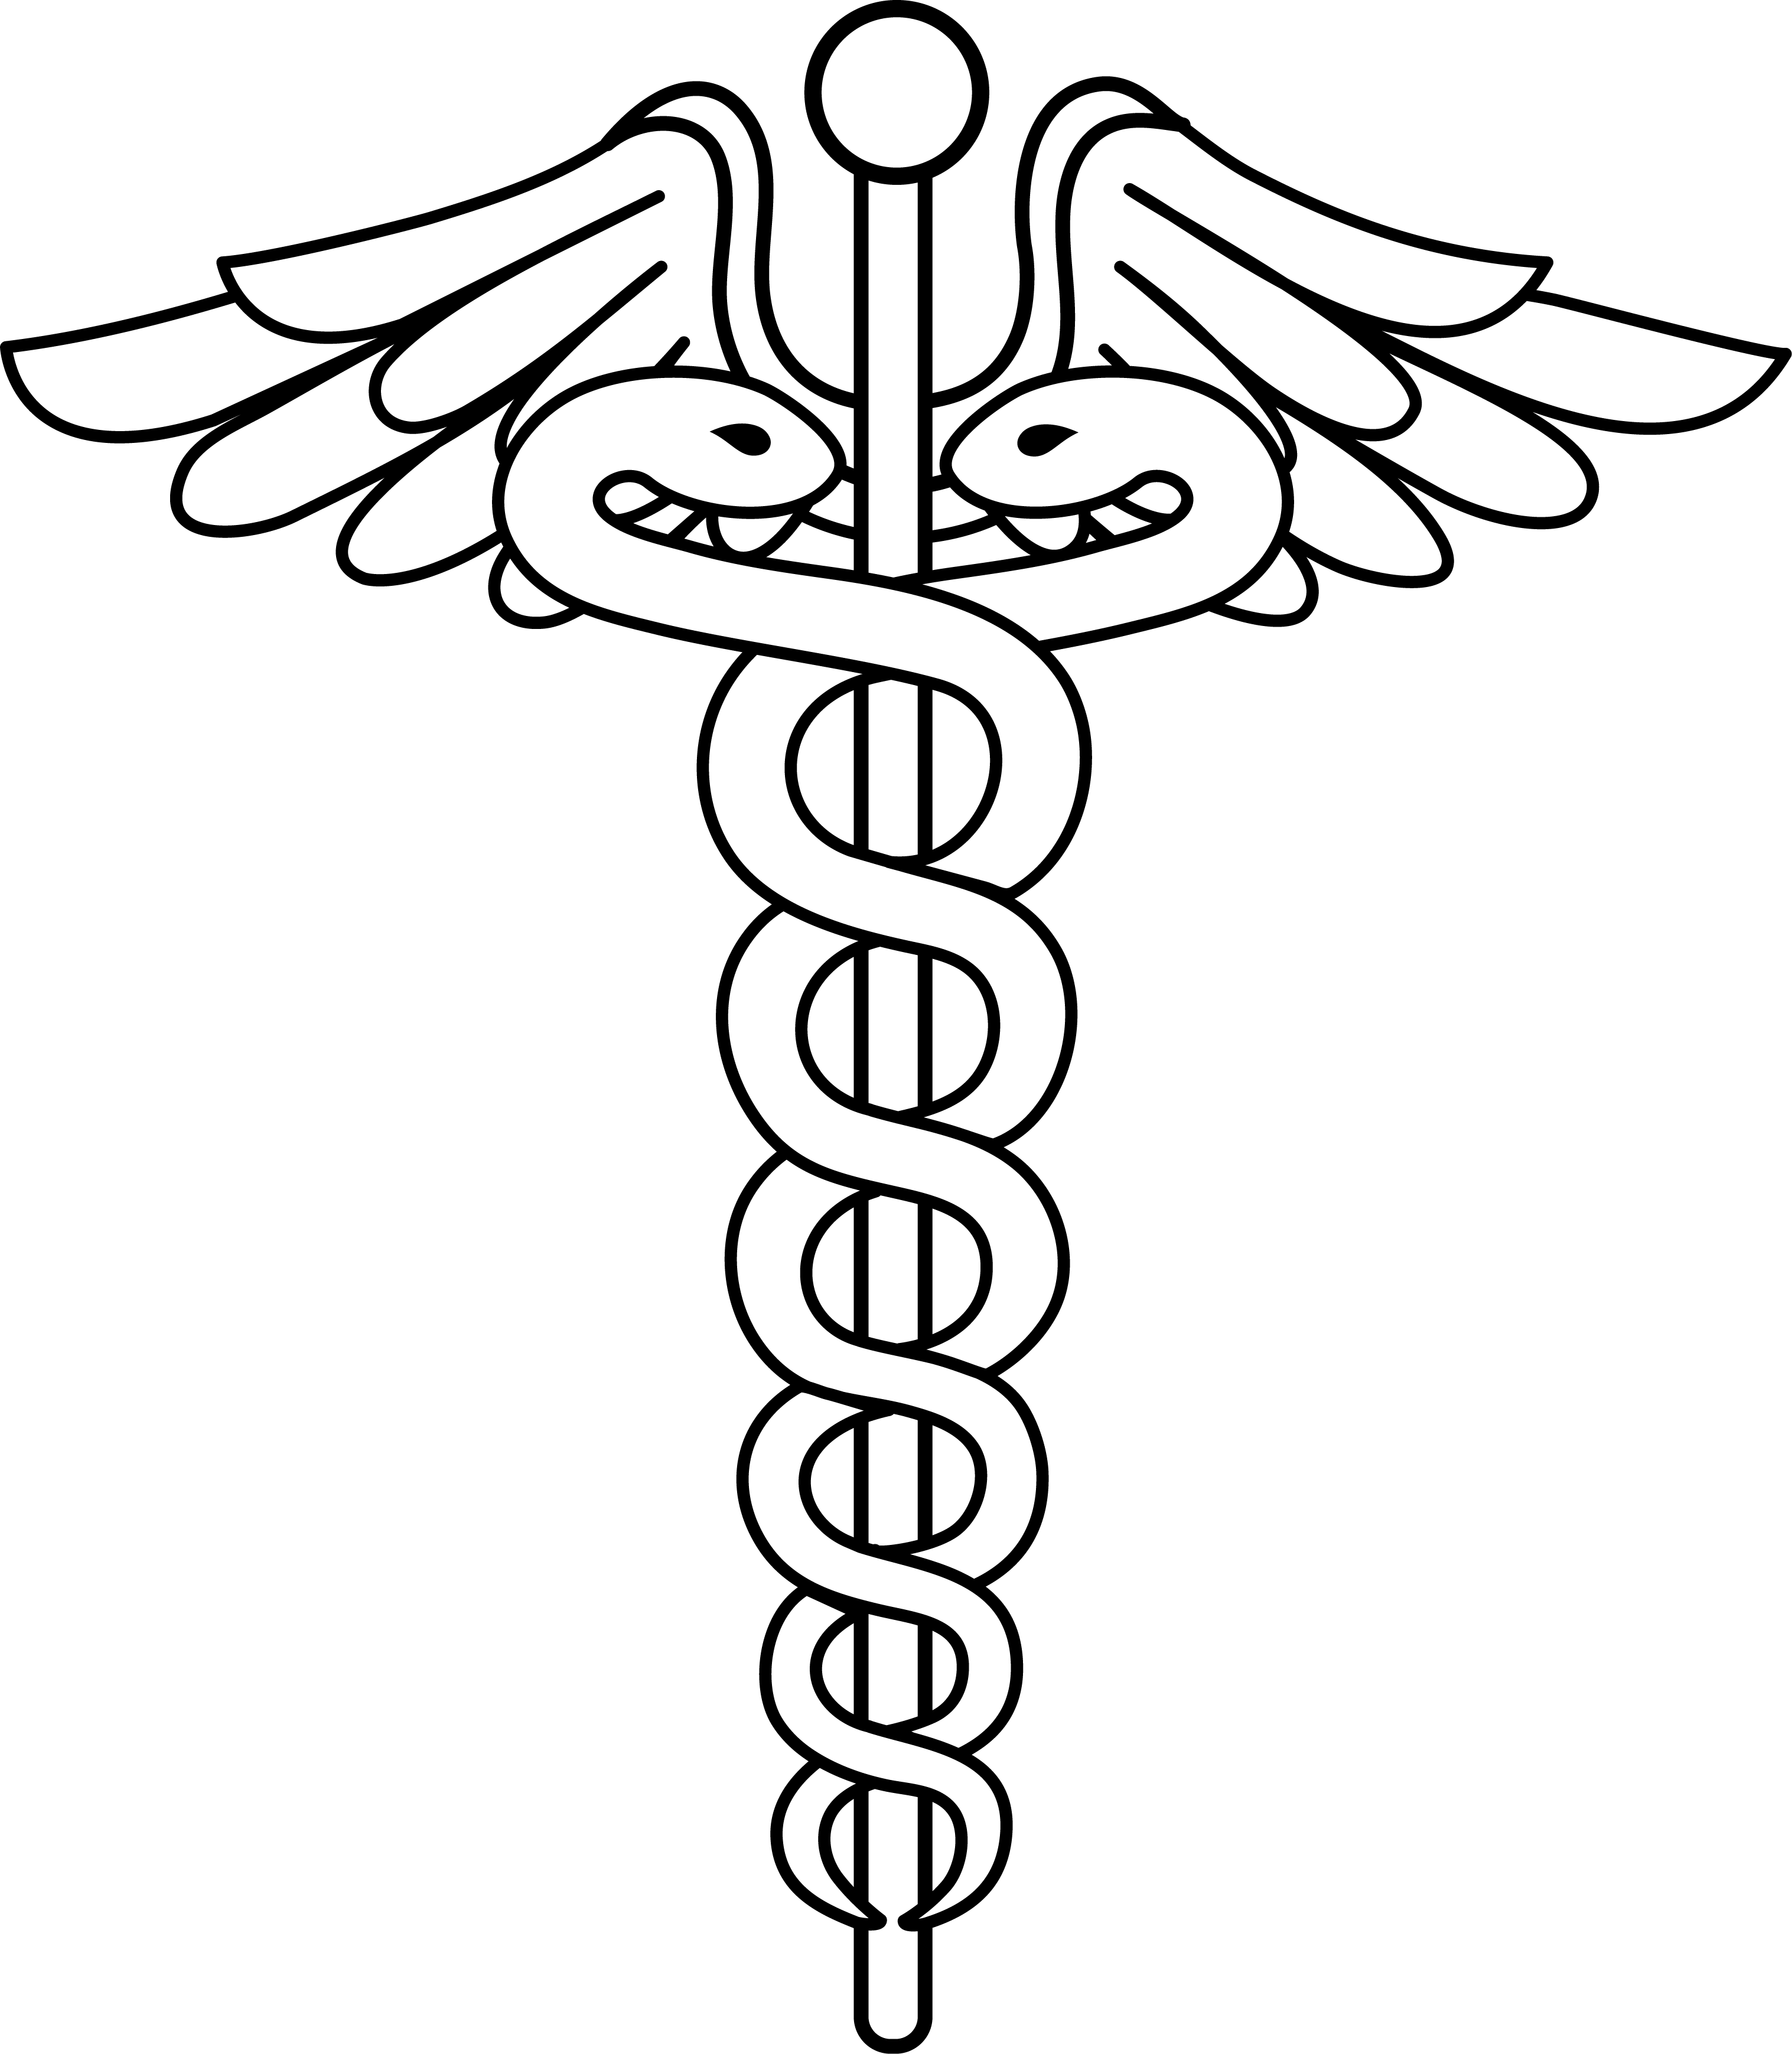 Clipart cross patterned. Caduceus medical logo lineart